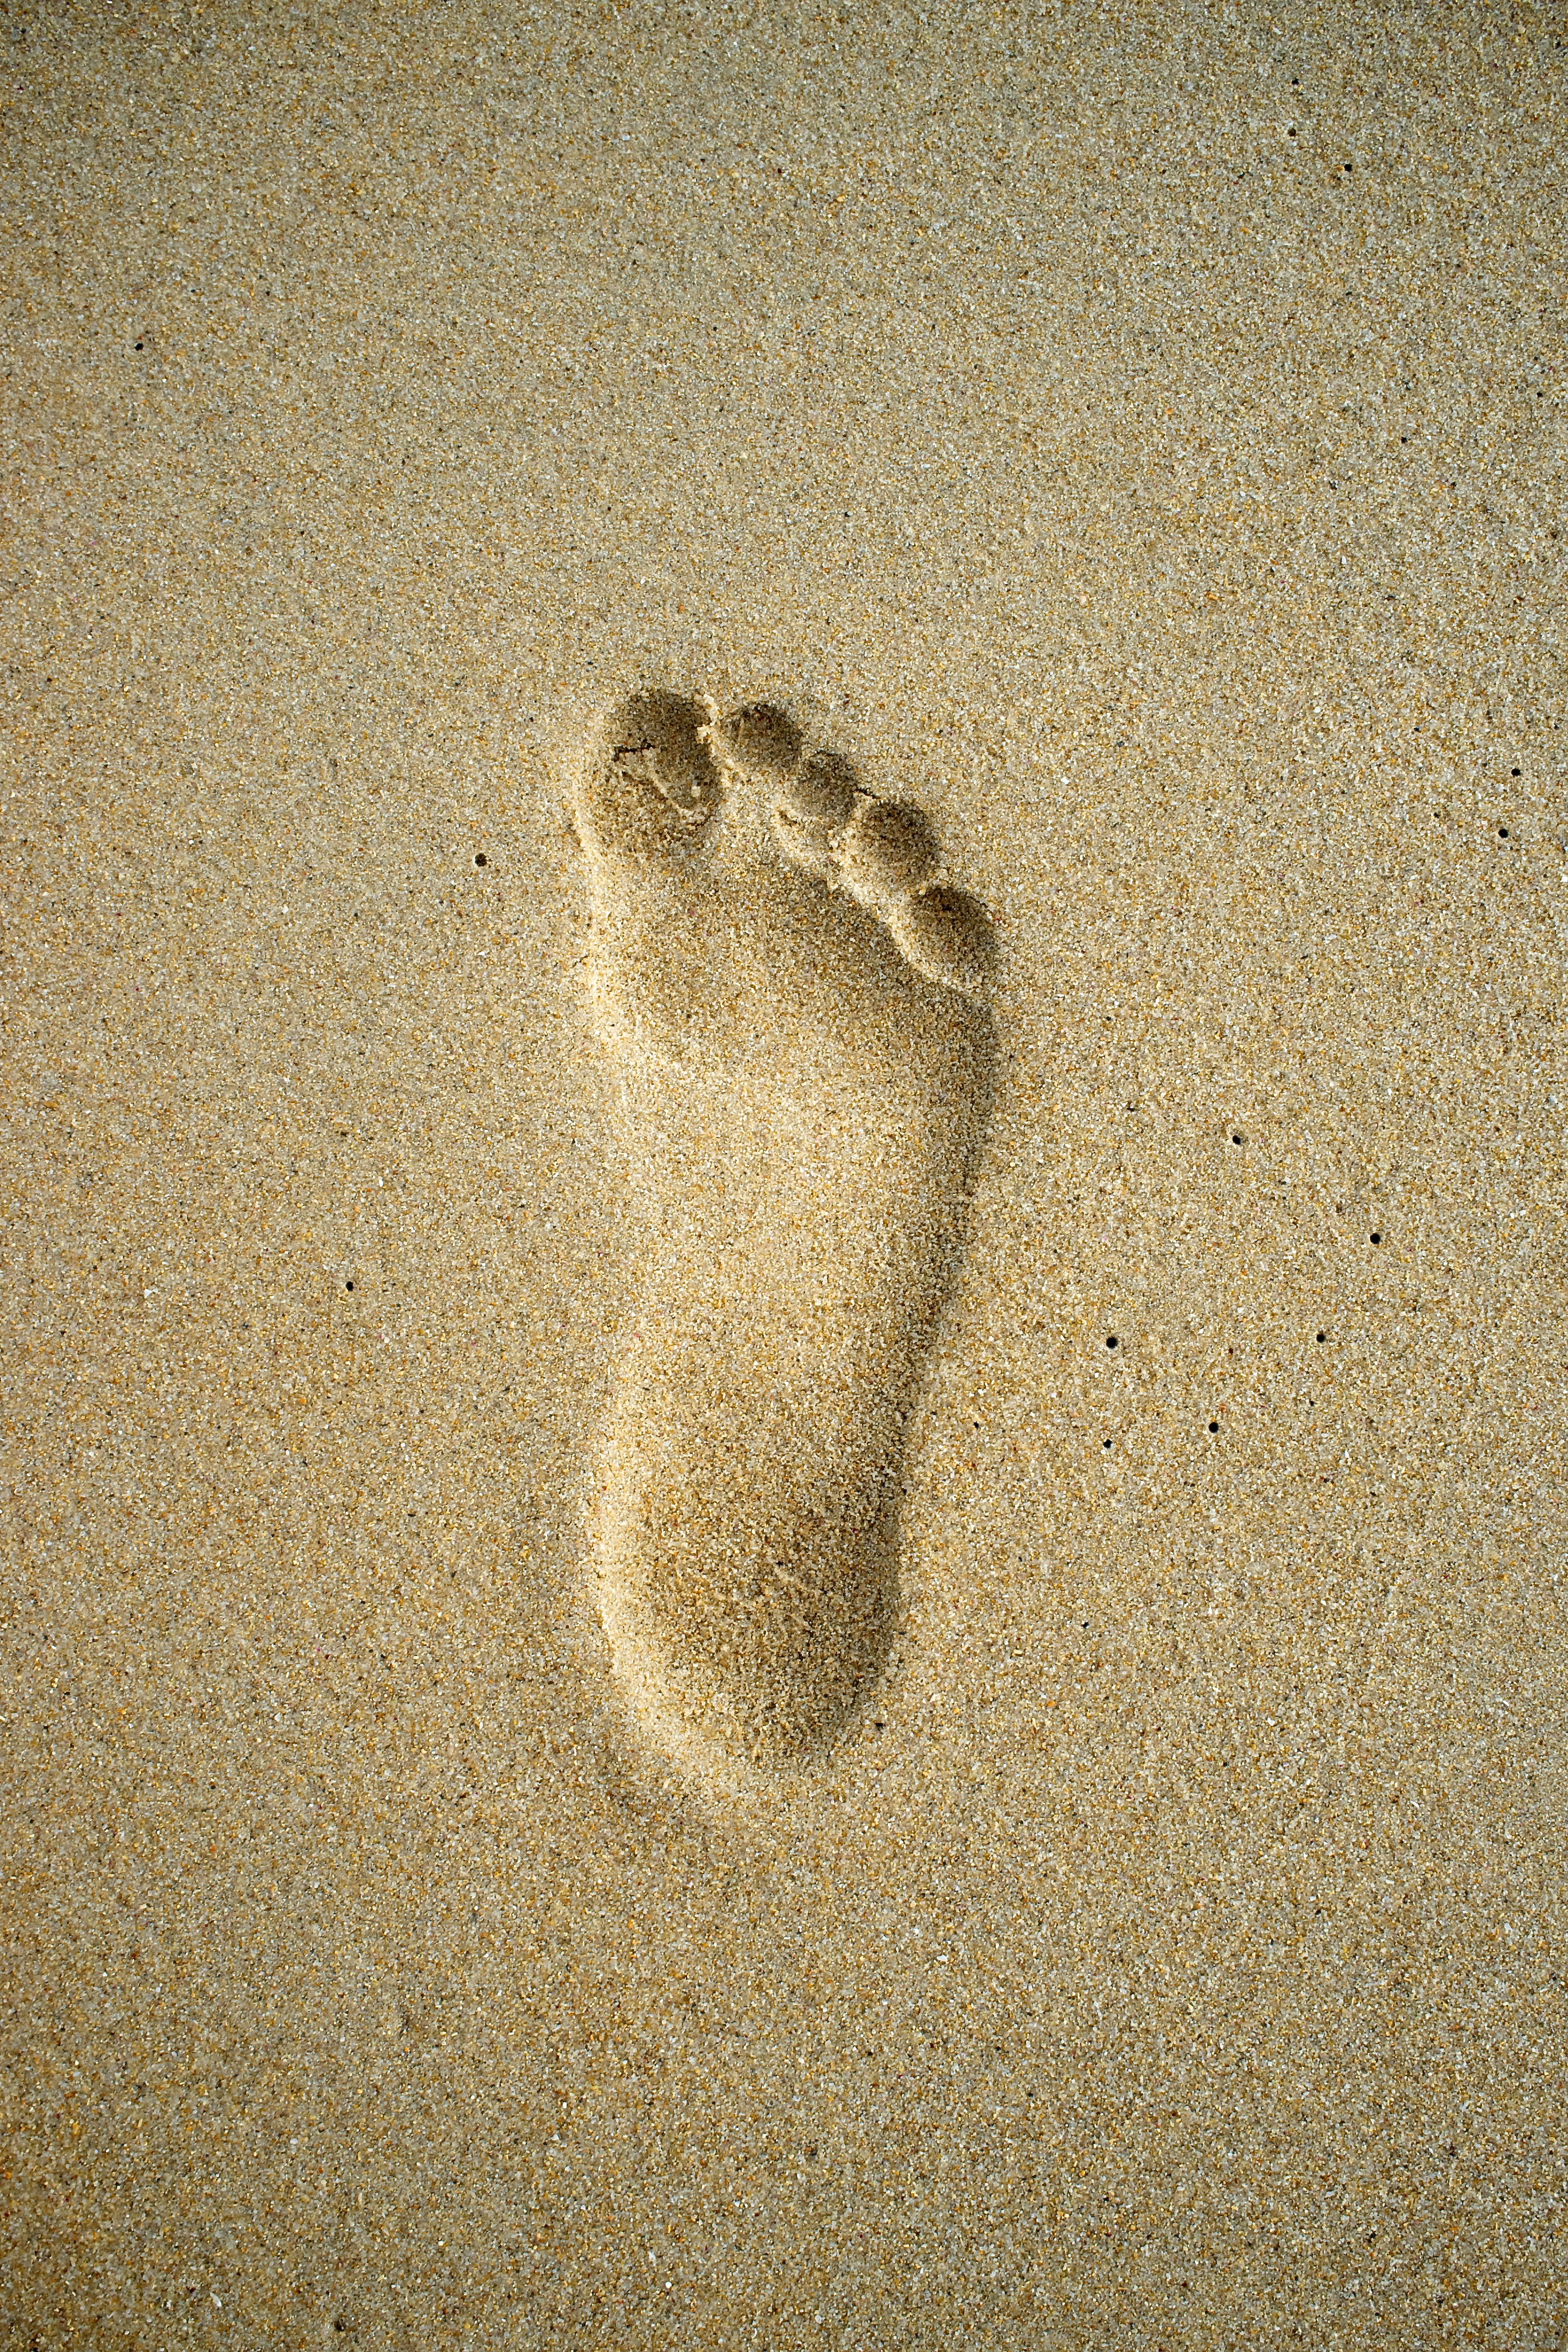 free photo  footprints in sand